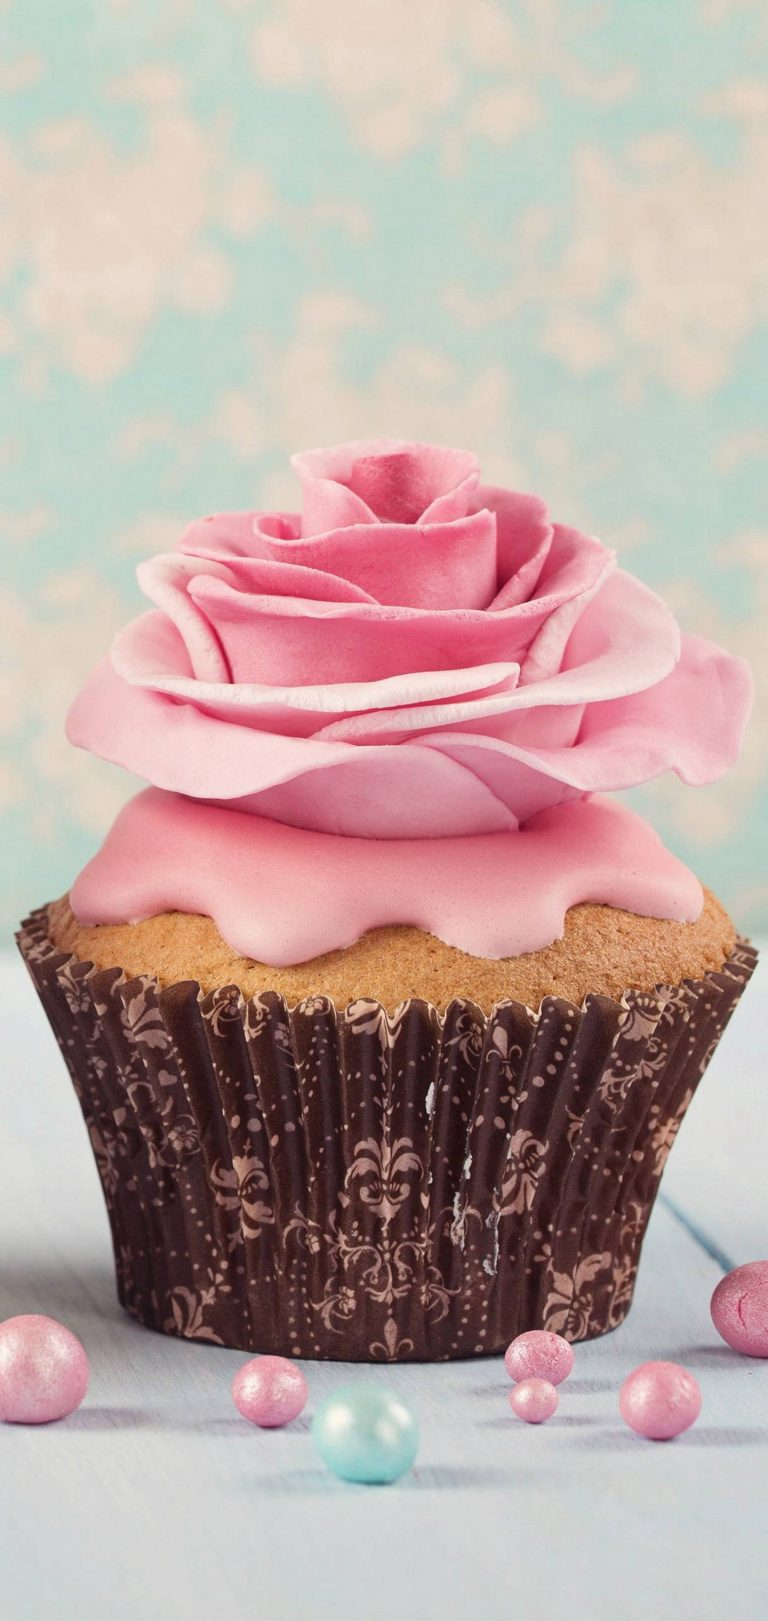 Pink Flower Cup Cake Wallpaper 1440x3040 768x1621